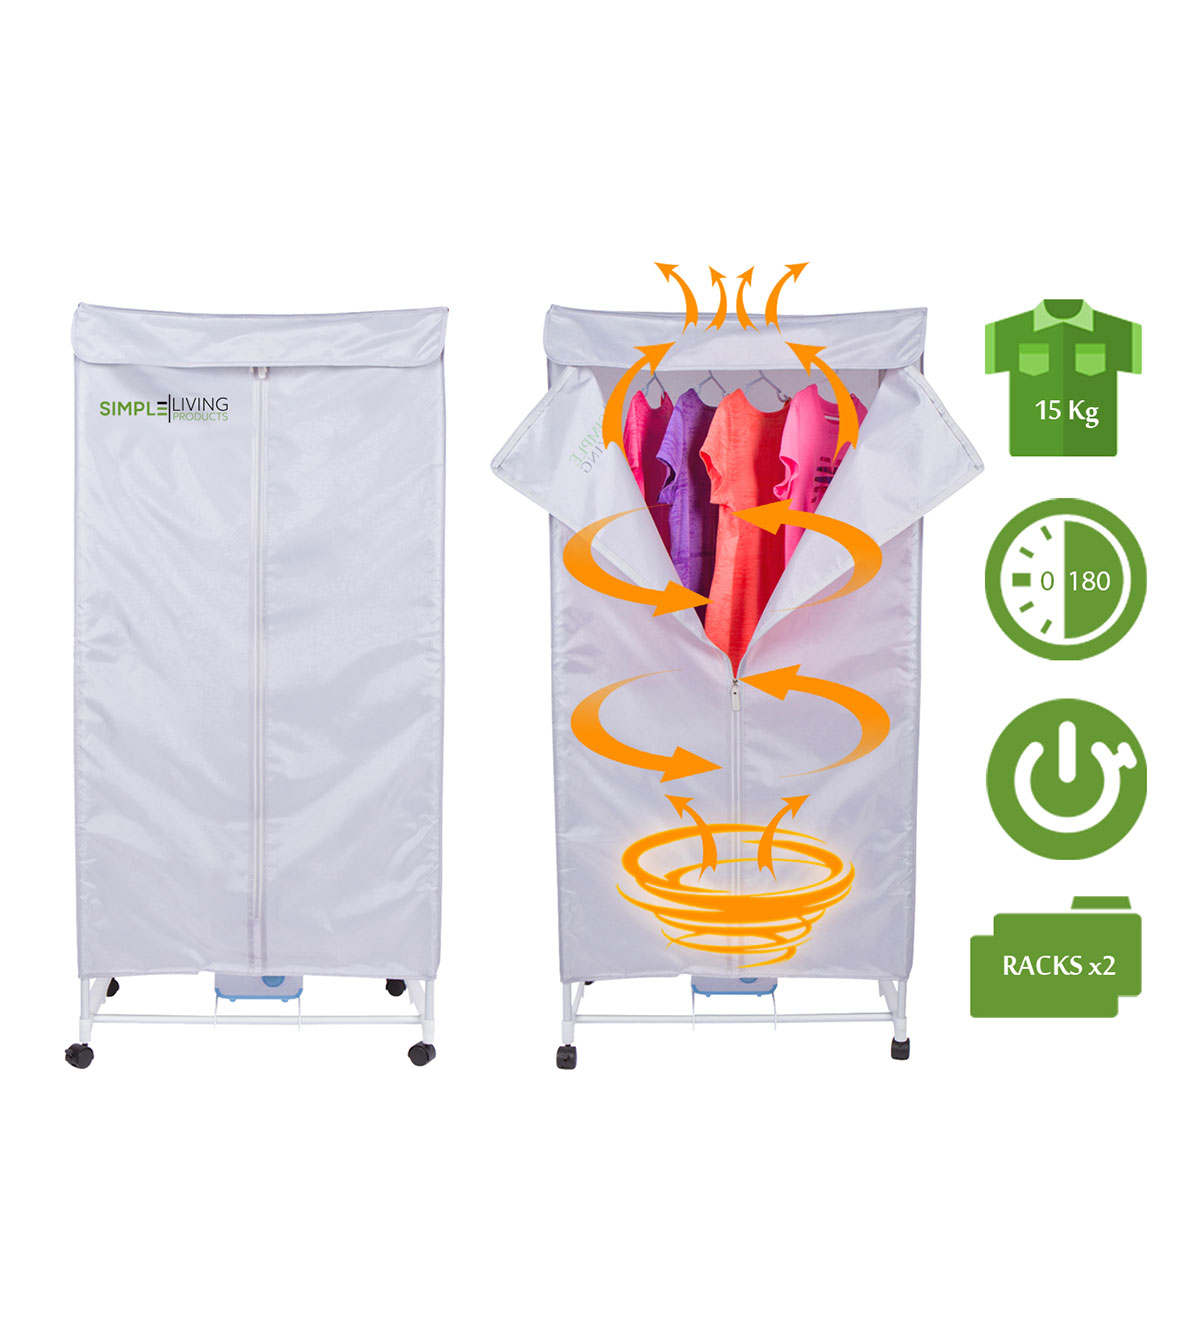 15KG Compact Electric Portable Clothing Dryer   Portable Clothes Dryer Rack  Dries Clothing In 30 Minutes